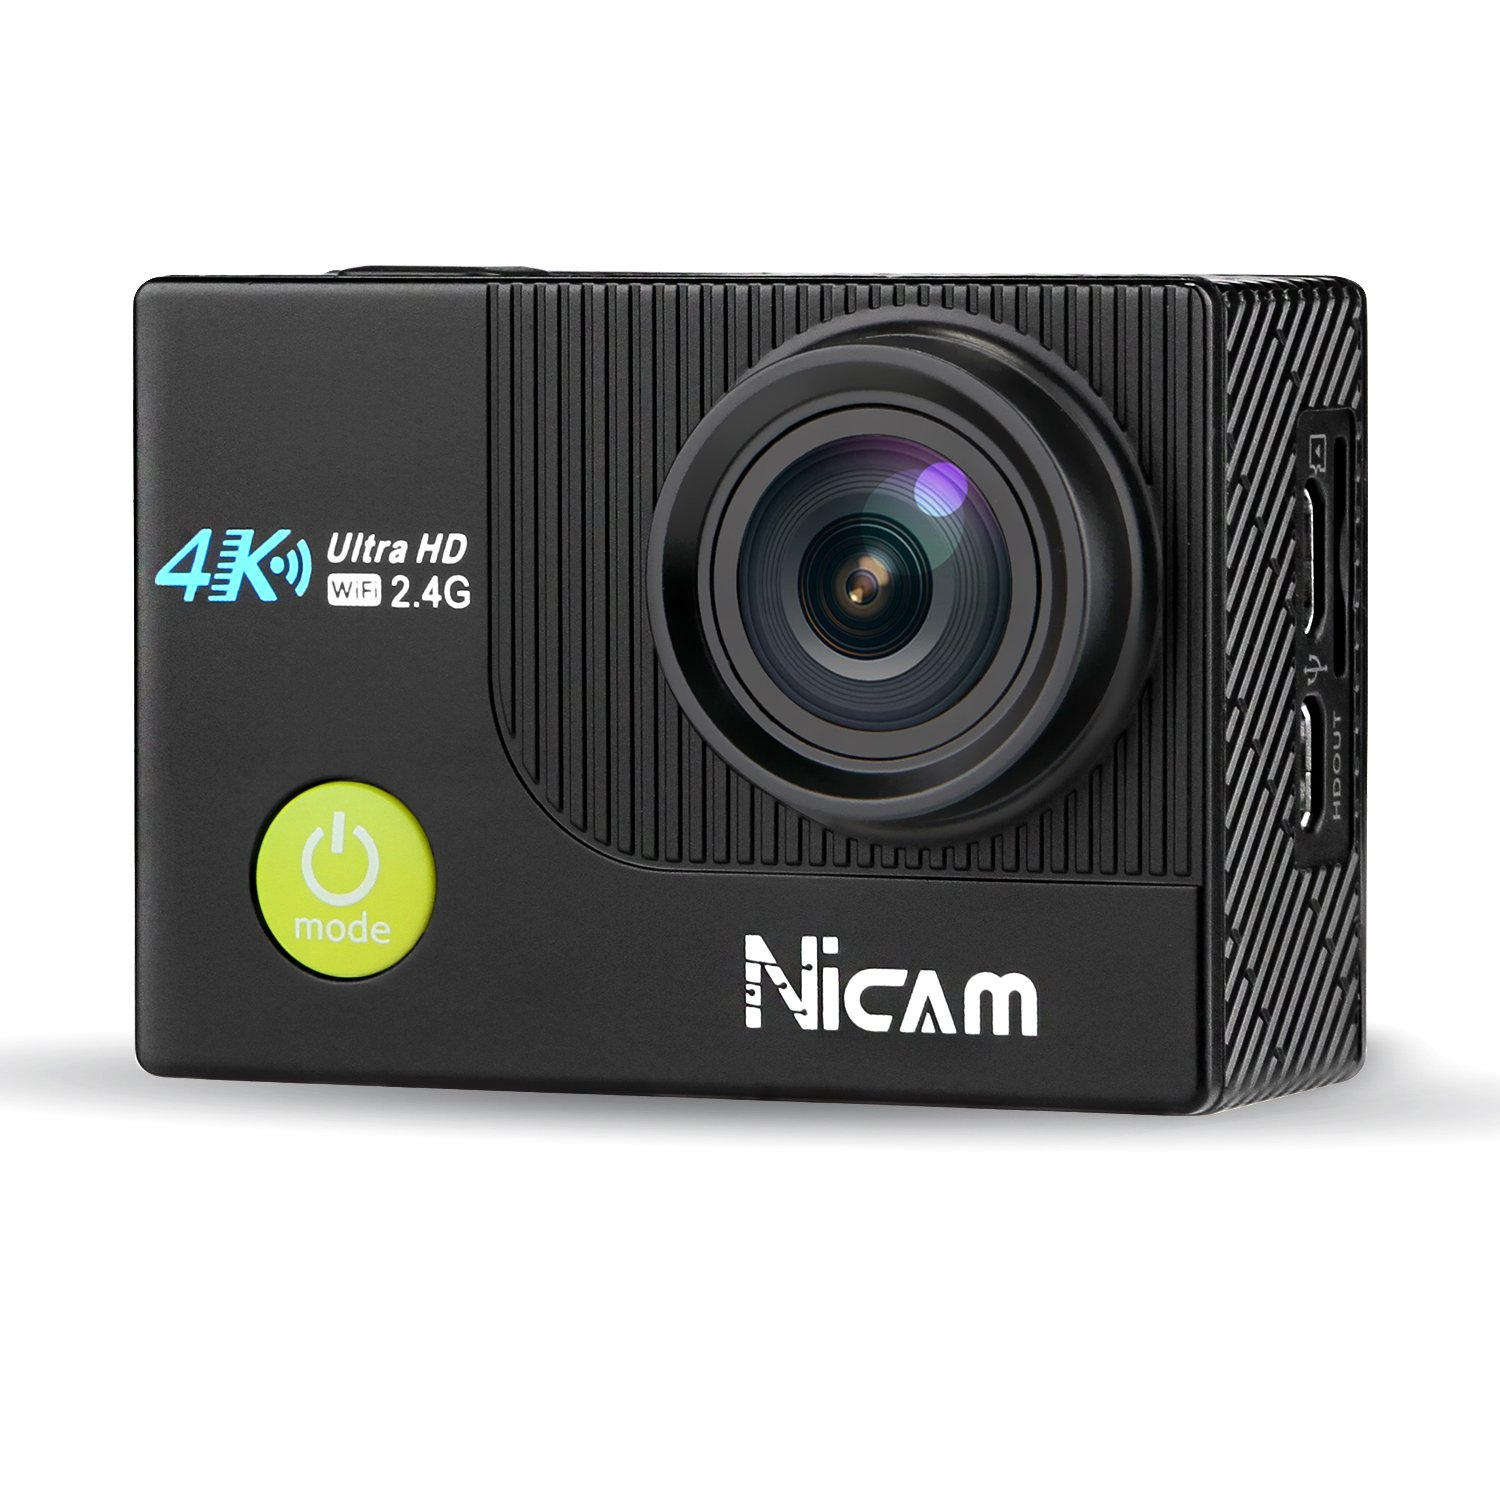 Nicam 4K WiFi Sports Action Camera Ultra HD Waterproof DV Camcorder, 12MP 170 Degree Wide Angle with 2 x 1050 mAh Batteries, Selfie Stick and Portable Carry Bag